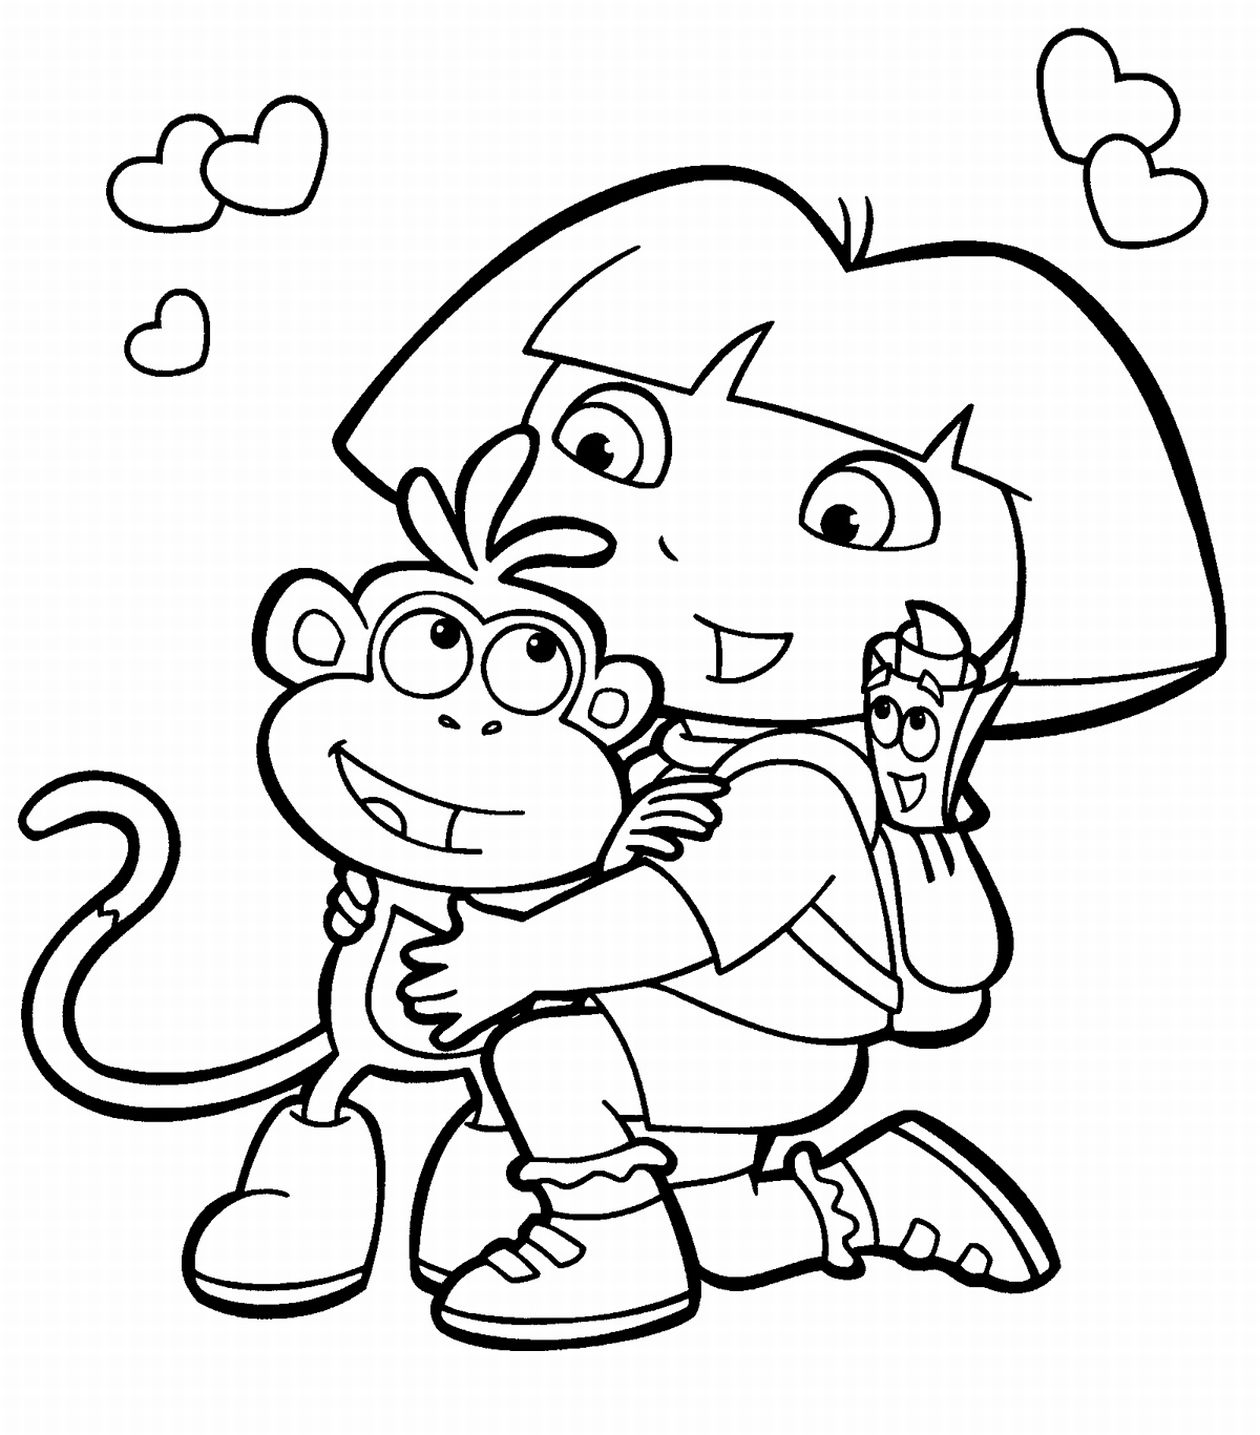 Dora coloring pages for kids ~ Coloring